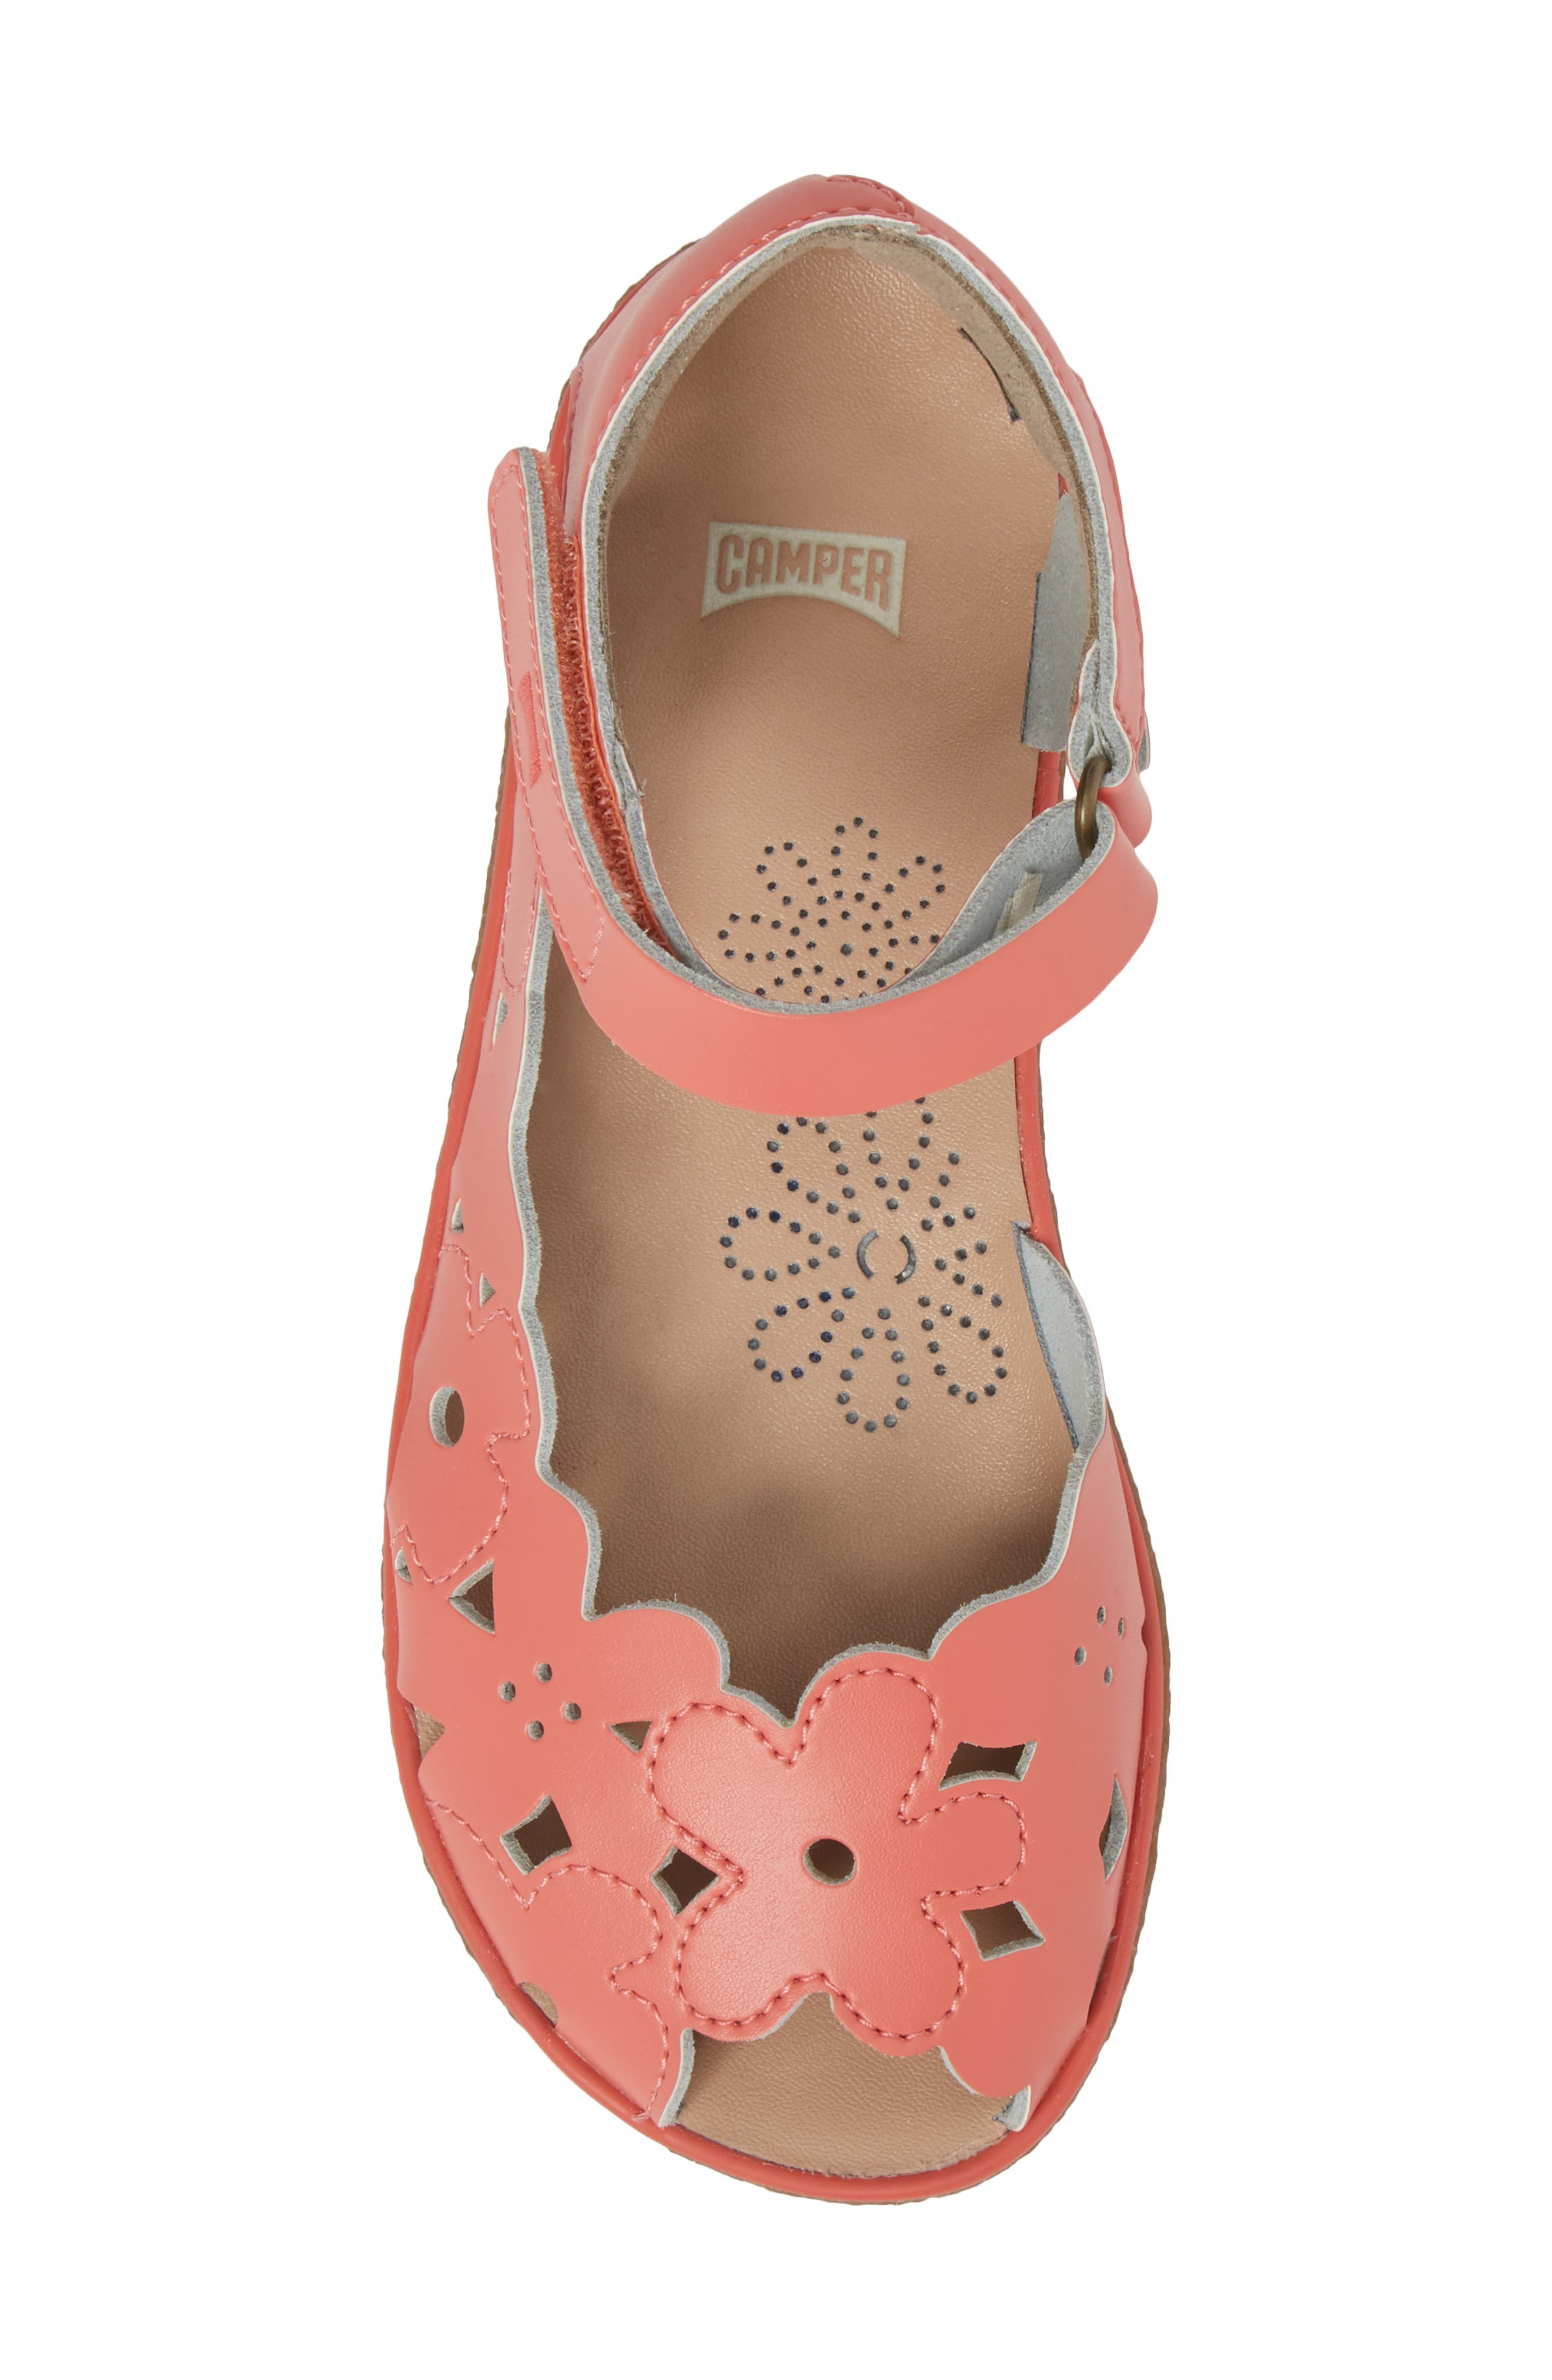 Twins Perforated Sandal,                             Alternate thumbnail 5, color,                             Pink